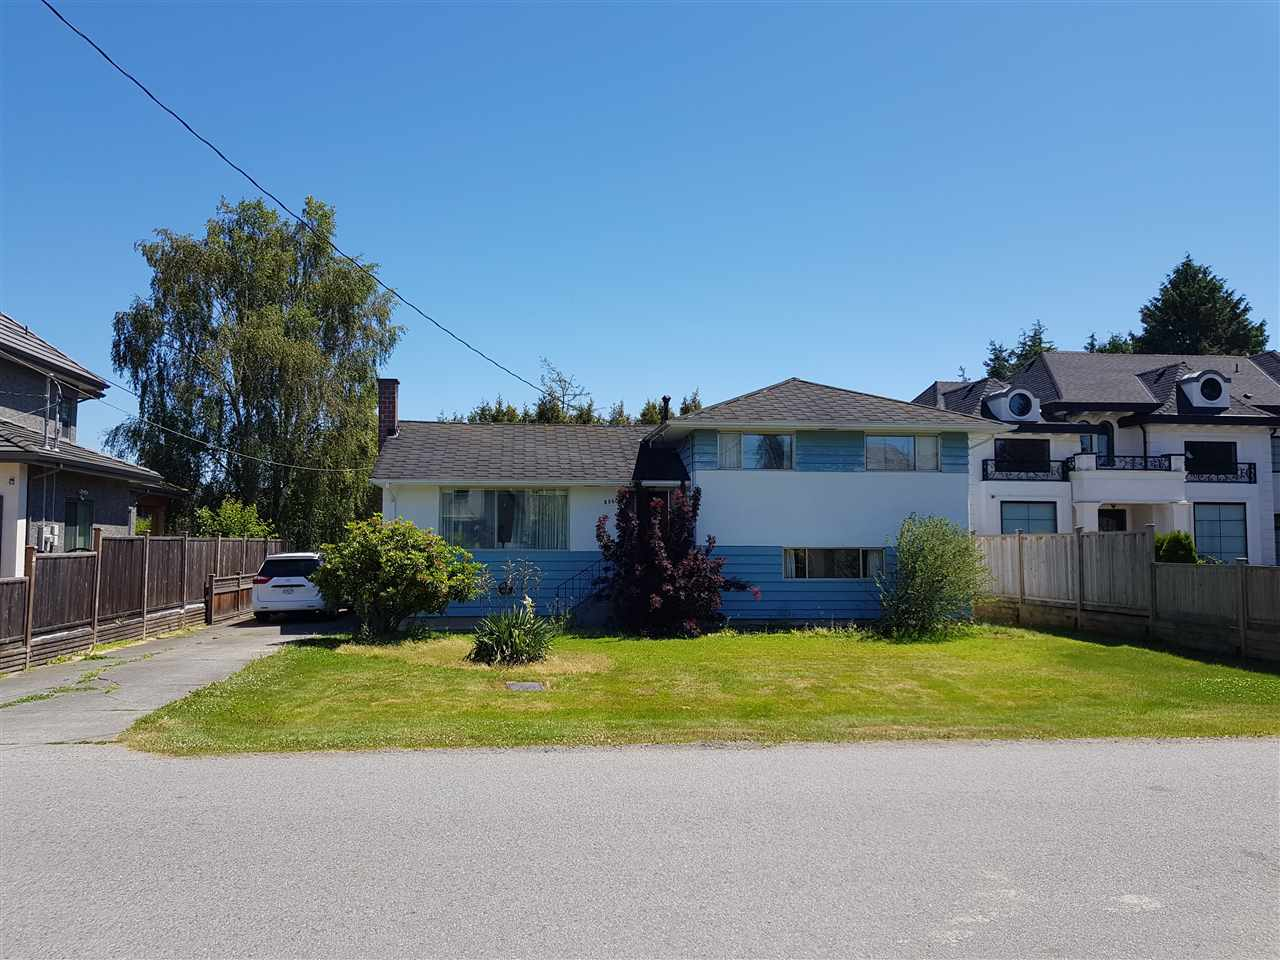 """Solid and clean 3 bedroom Split level home on rectangular 66 x 106.5' lot on nice street in Popular Seafair Area! Well kept by long time owner, features newer Furnace and hot water tank. Just steps down the street from Famous Gilmore French Immersion School, very close to Dyke Trails and Seafair Shopping Centre! Very Nice """"Clean"""" lot - no trees, no easements. Lots of new Homes on the street. This area of West Richmond is one of the quietest and nicest places to live in the whole City with easy access to Terra Nova and Steveston Village. Seller requires a short term rent back. Thanks"""